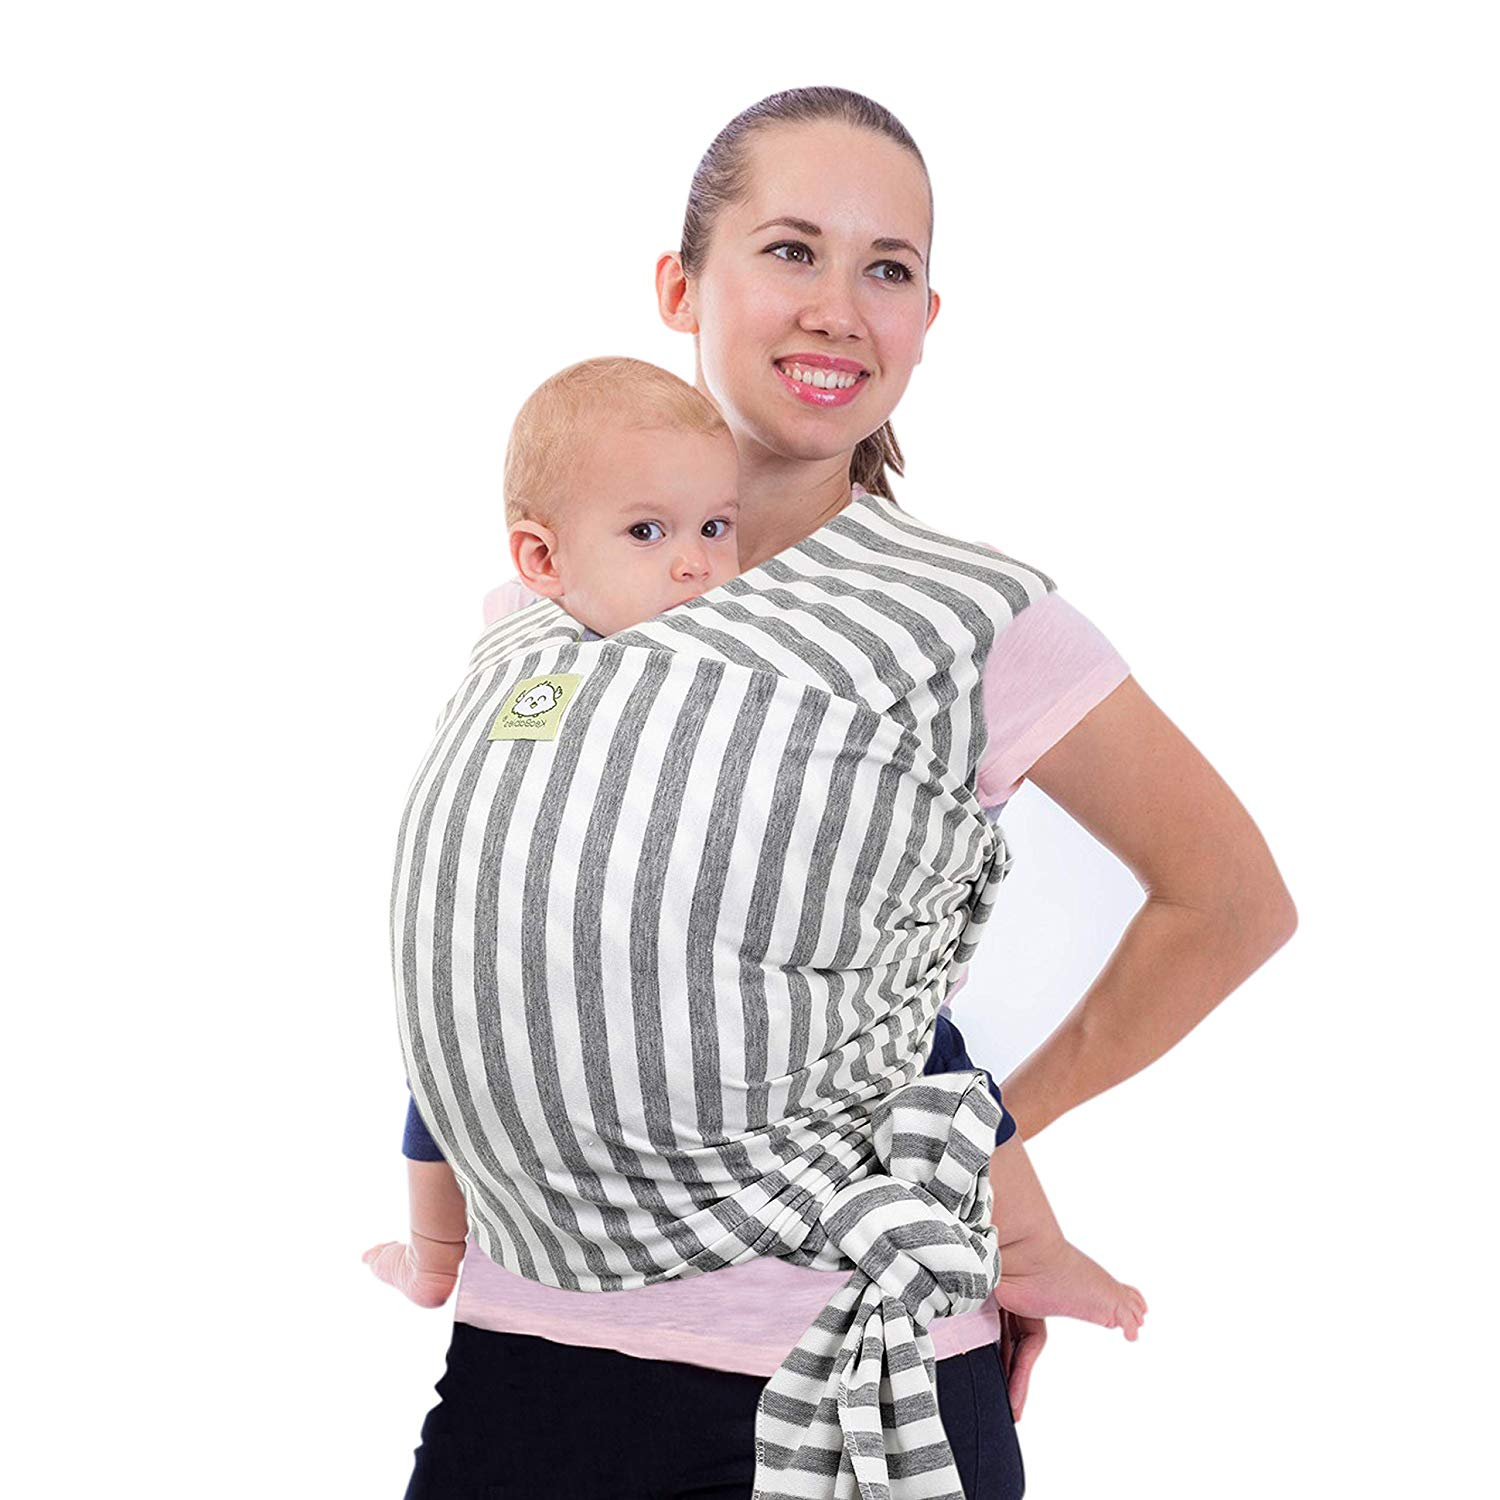 high Quality Baby Carrier for Newborns Babies up to 15kg Made of Soft Cotton Baby Sling Rose incl Baby wrap Carrier by Makimaja/® Carry Bag +Free Baby bib